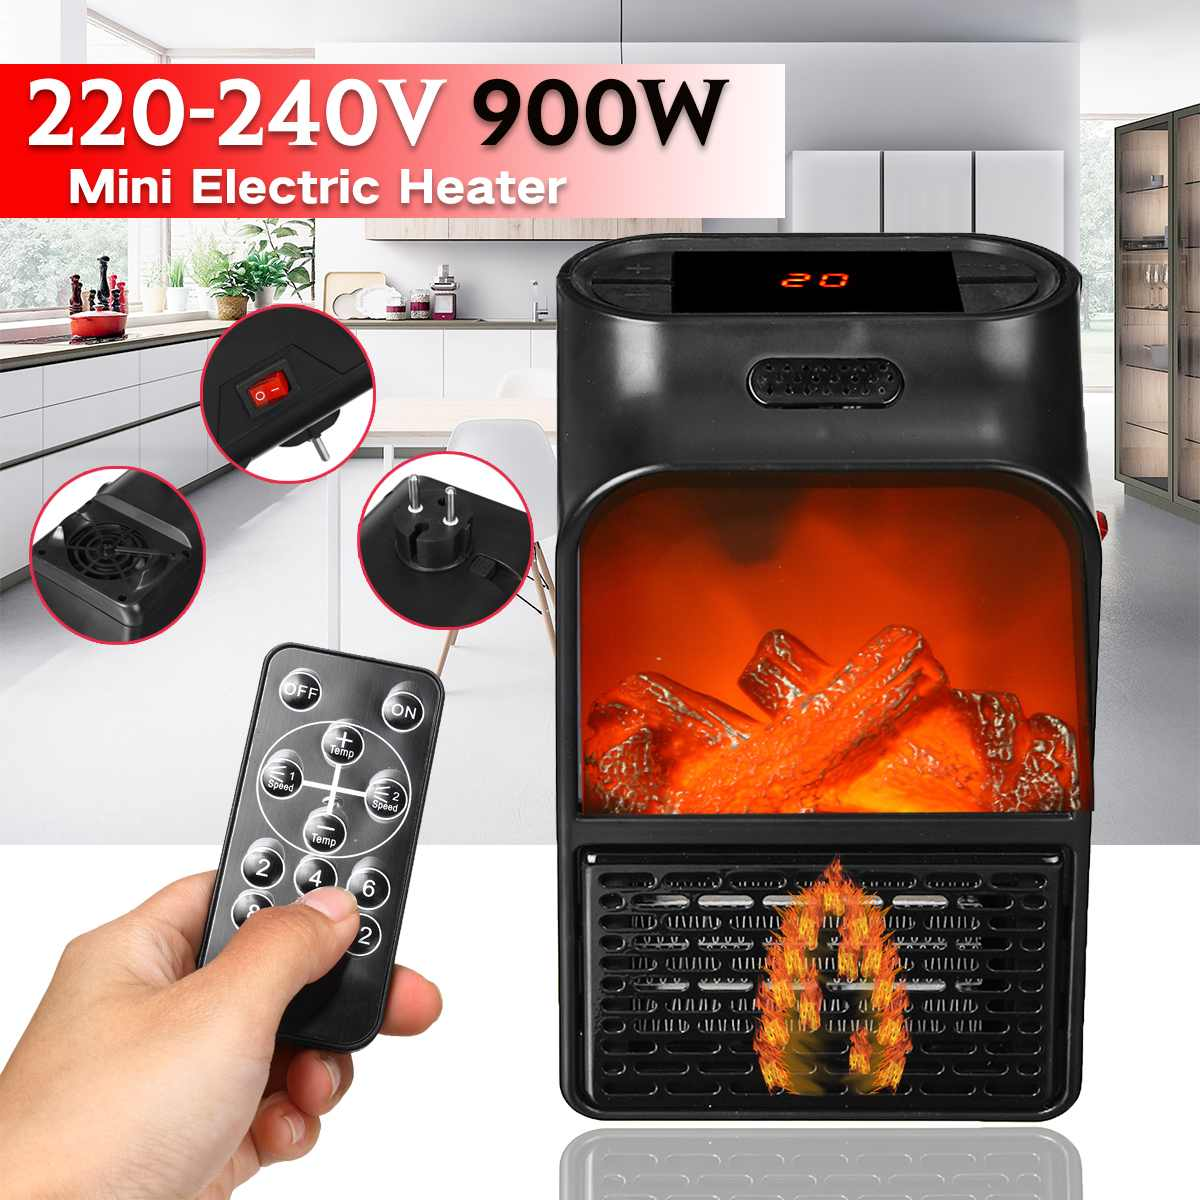 900W Mini Electric Heater Portable Electric Space Room Heater Air Heating Space Winter Warmer Machine With Remote Control